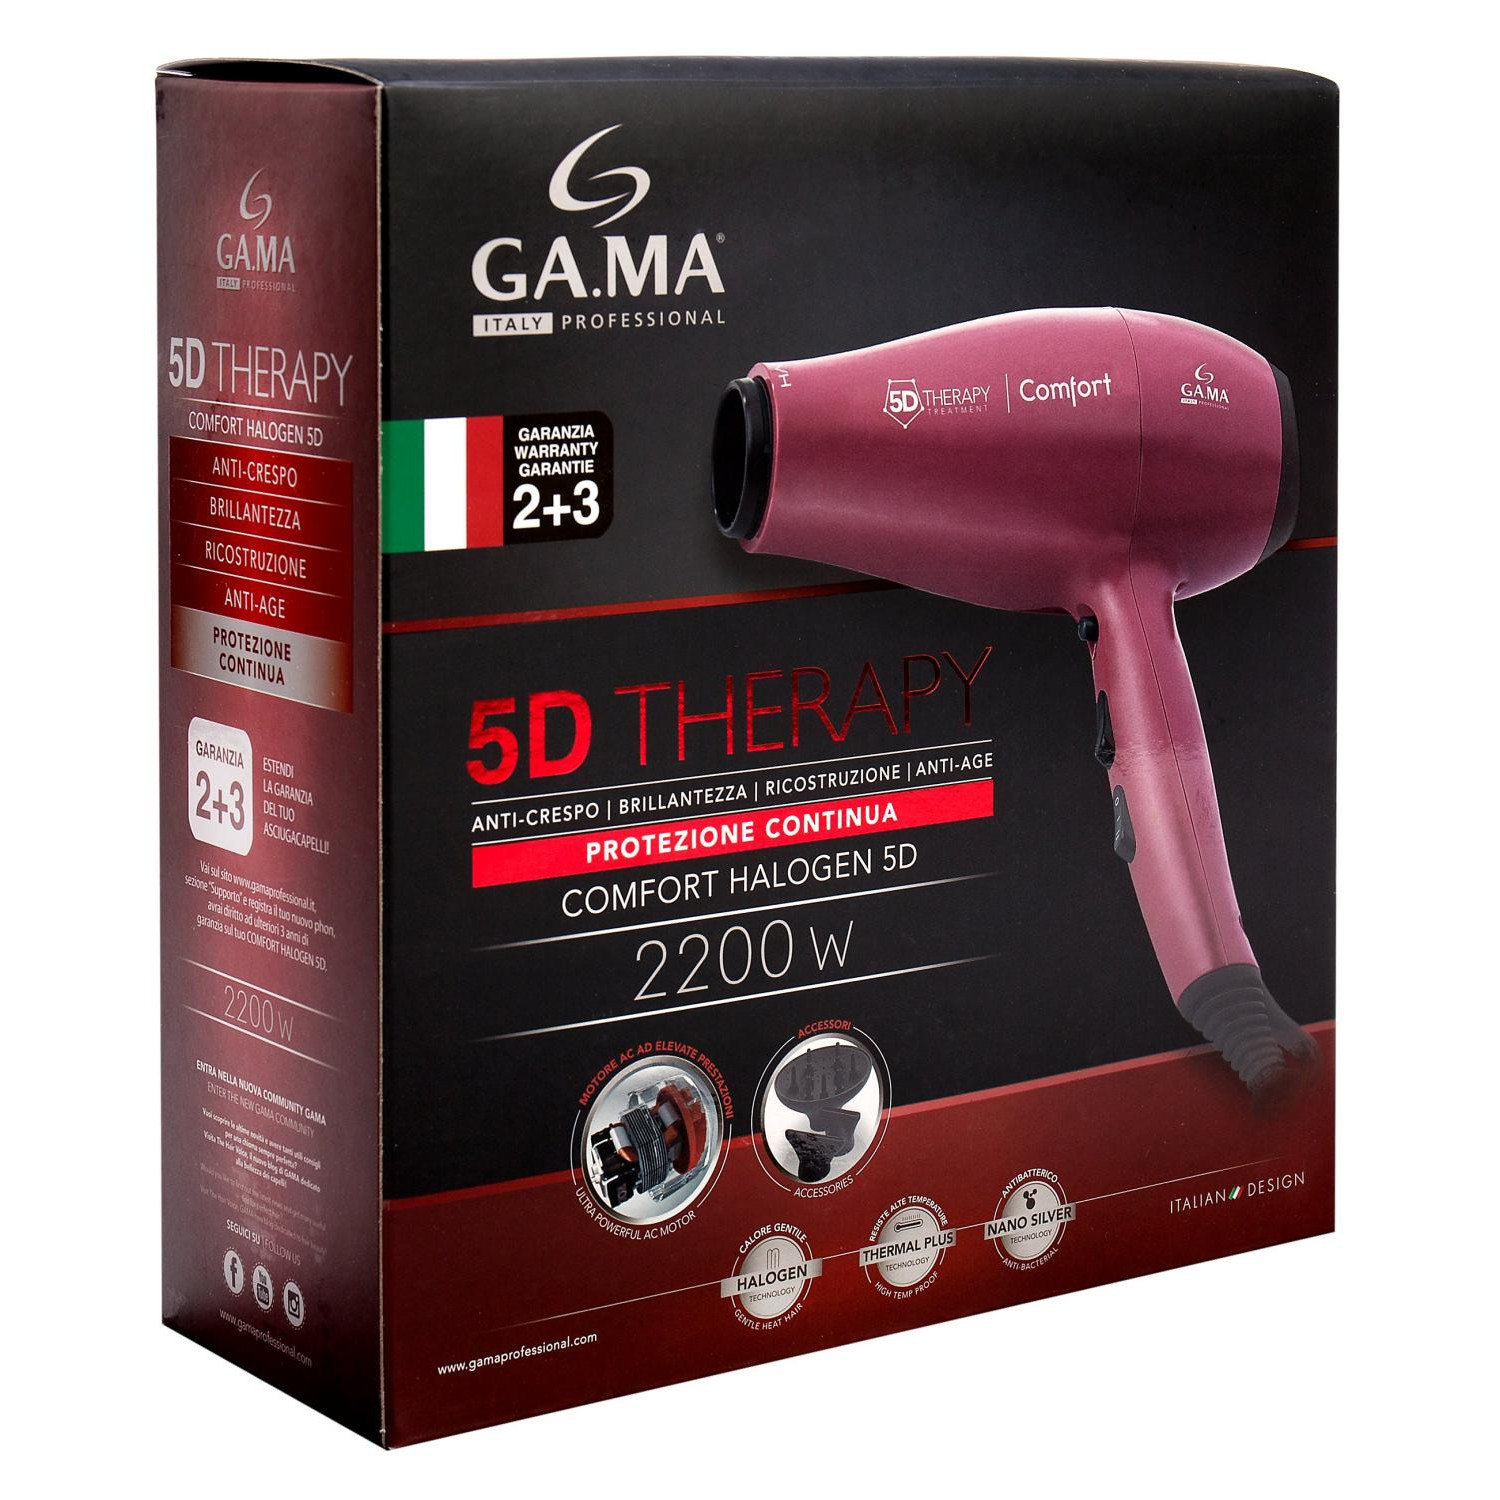 Ga.Ma Comfort Halogen 5D Therapy (GH 0501)